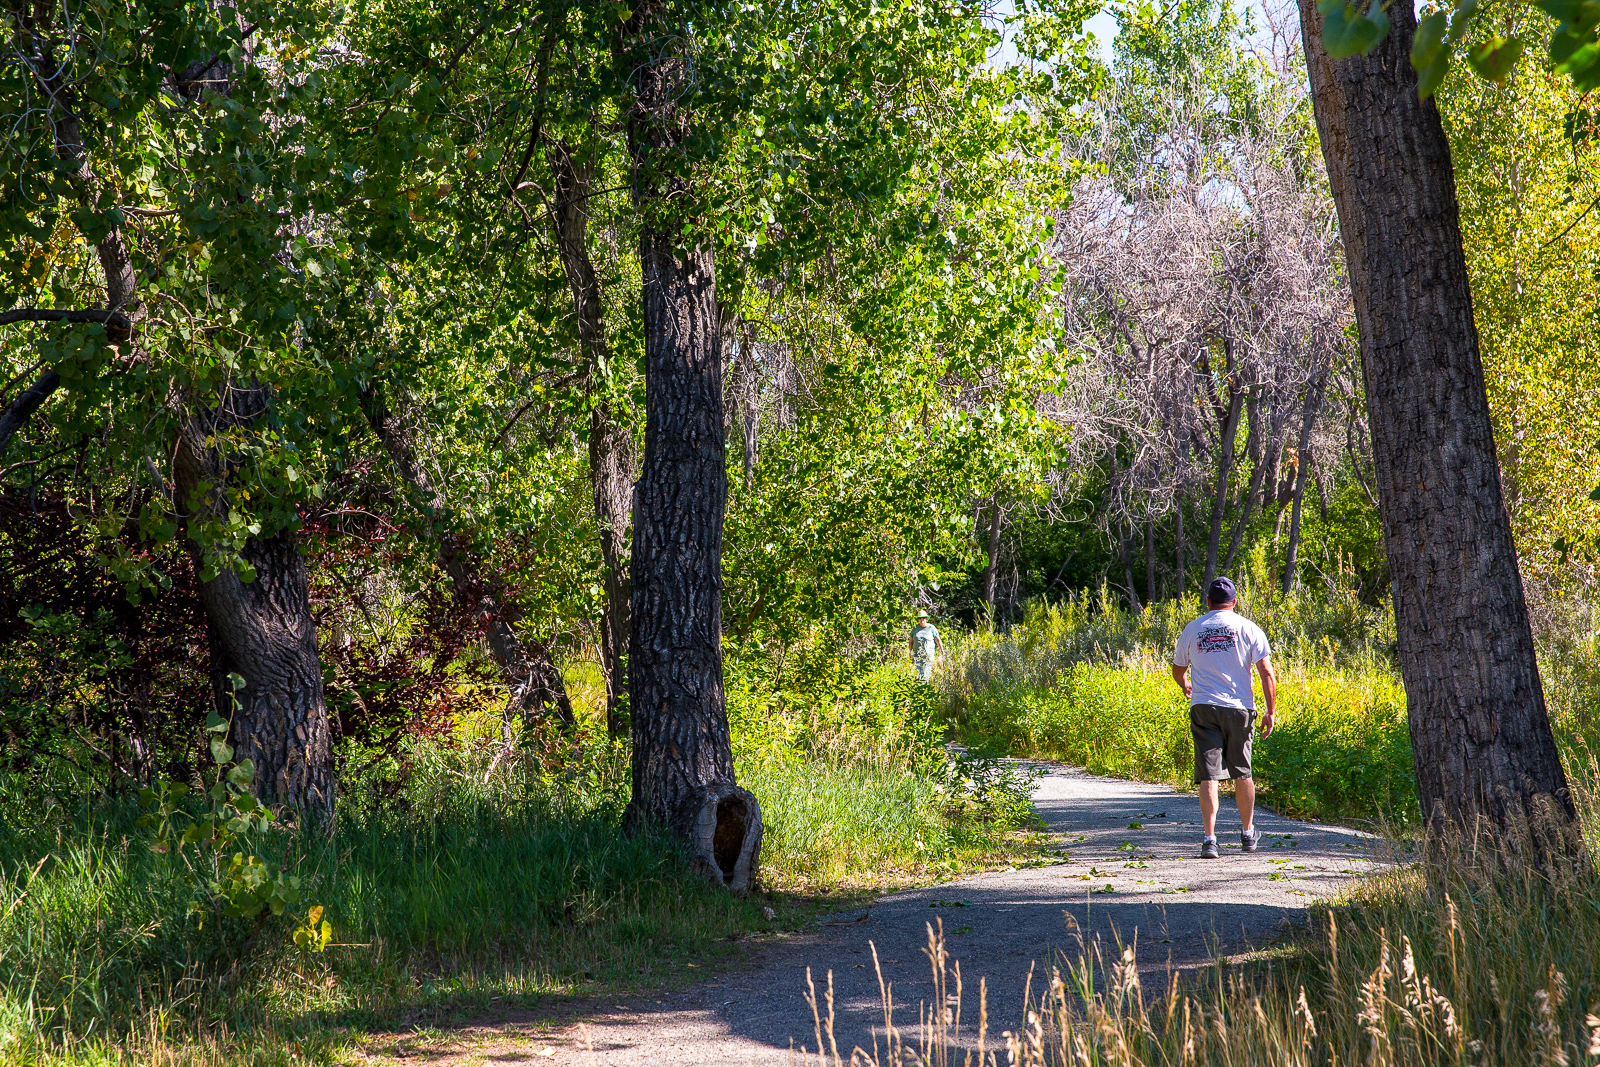 Jewell_Wetlands_Park_201409_35.jpg